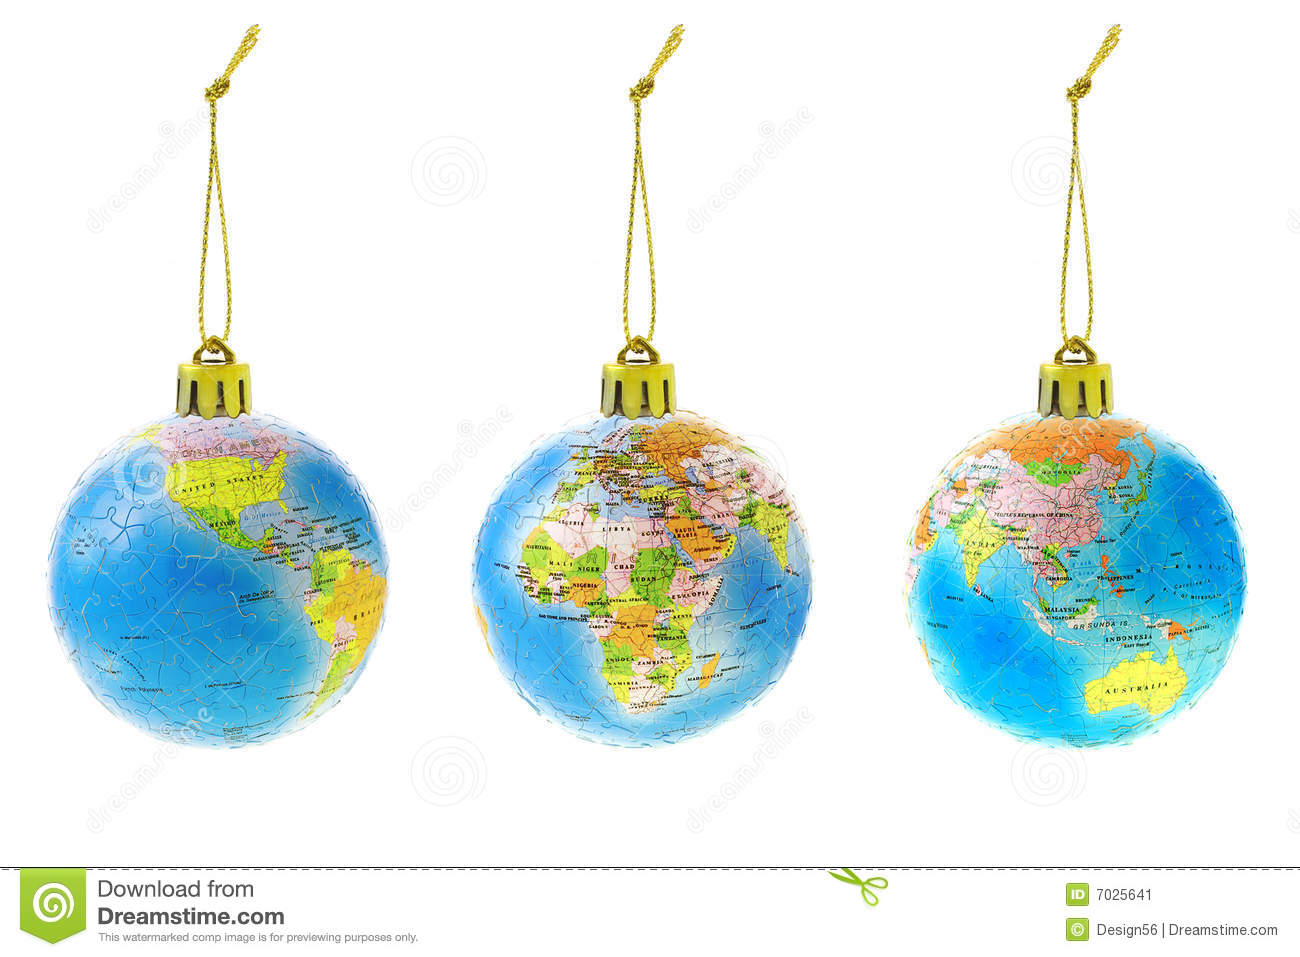 Glass globe ornaments - Christmas Globe Ornaments